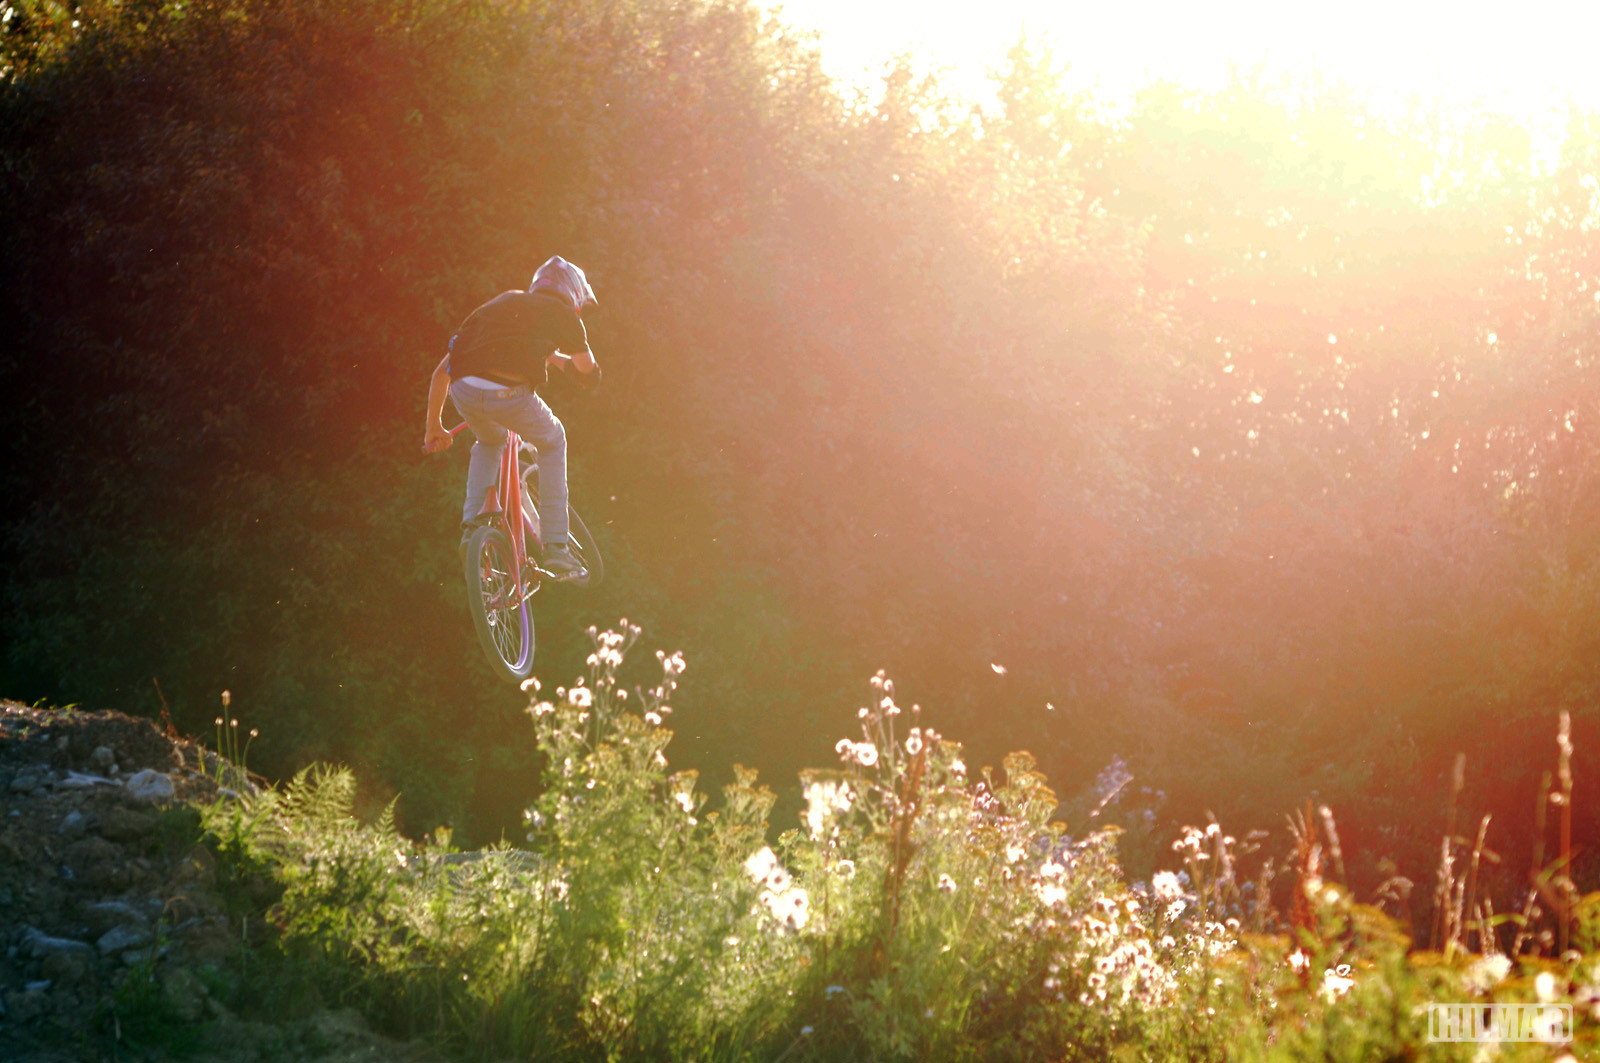 Sunset sesh - Fredleth - Mountain Biking Pictures - Vital MTB